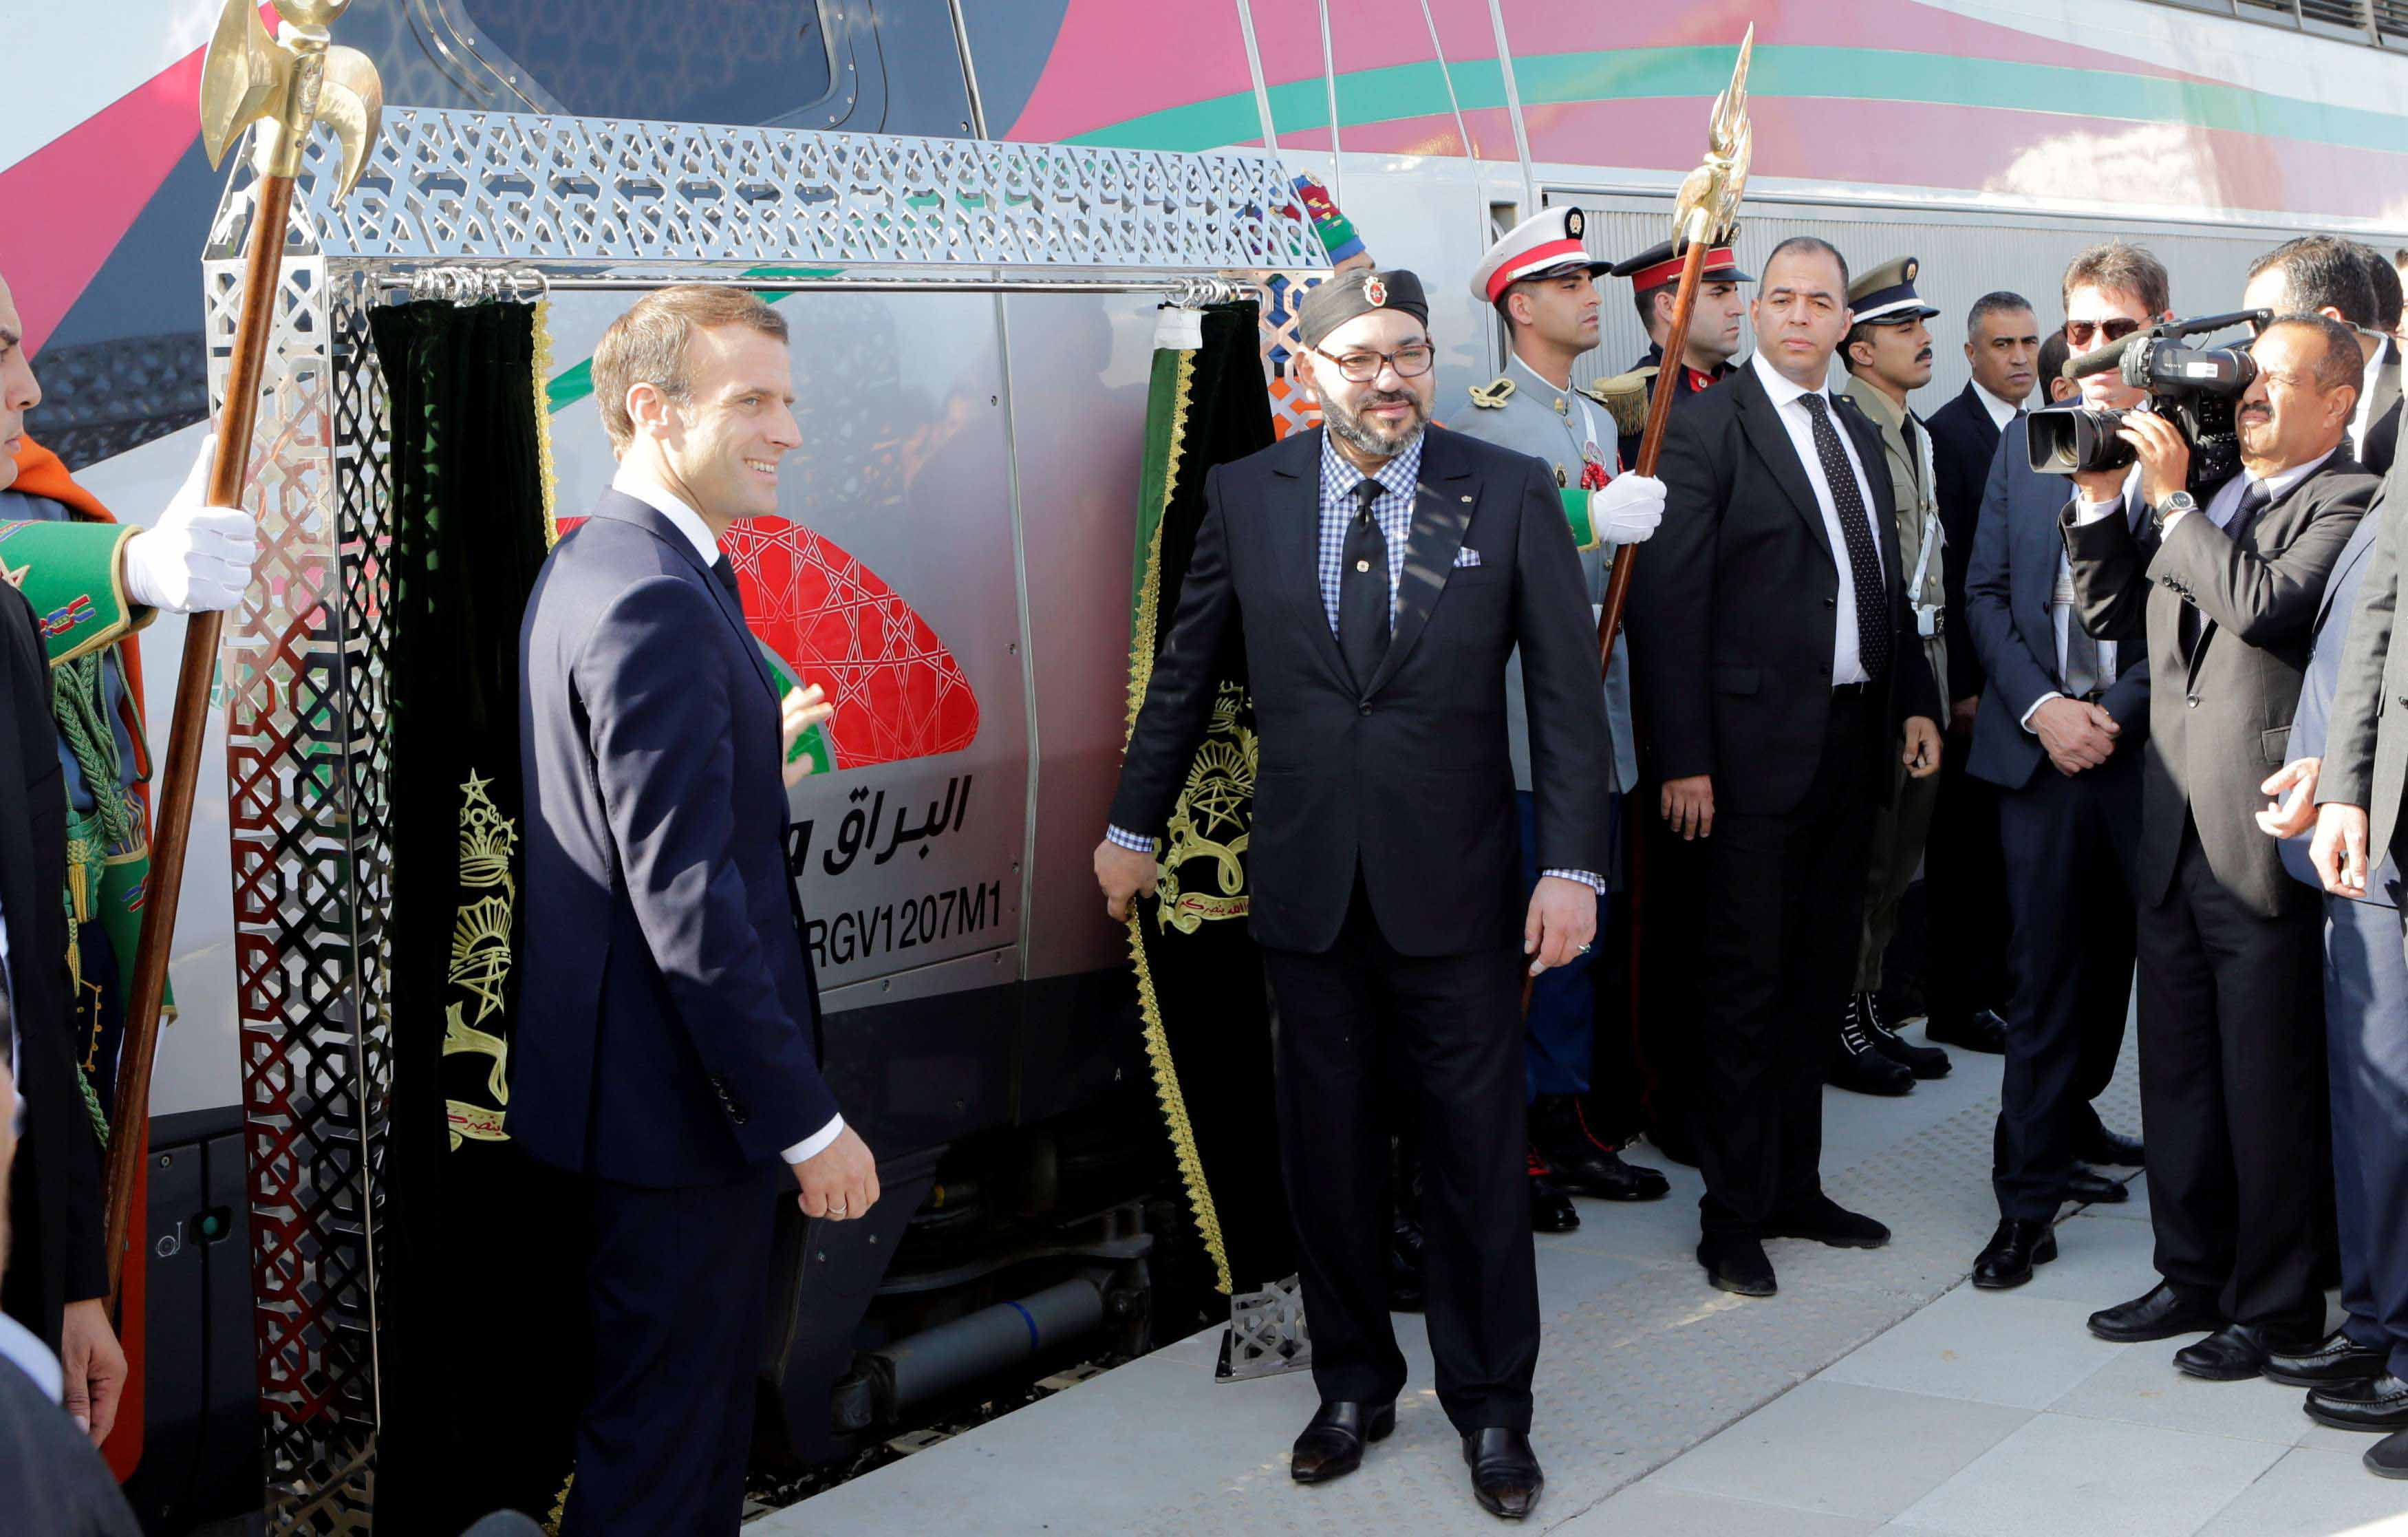 French President Emmanuel Macron (L) and Moroccan King Mohammed VI attend the launch ceremony of Africa's first high-speed train (LGV) in Tangier, on November 15.